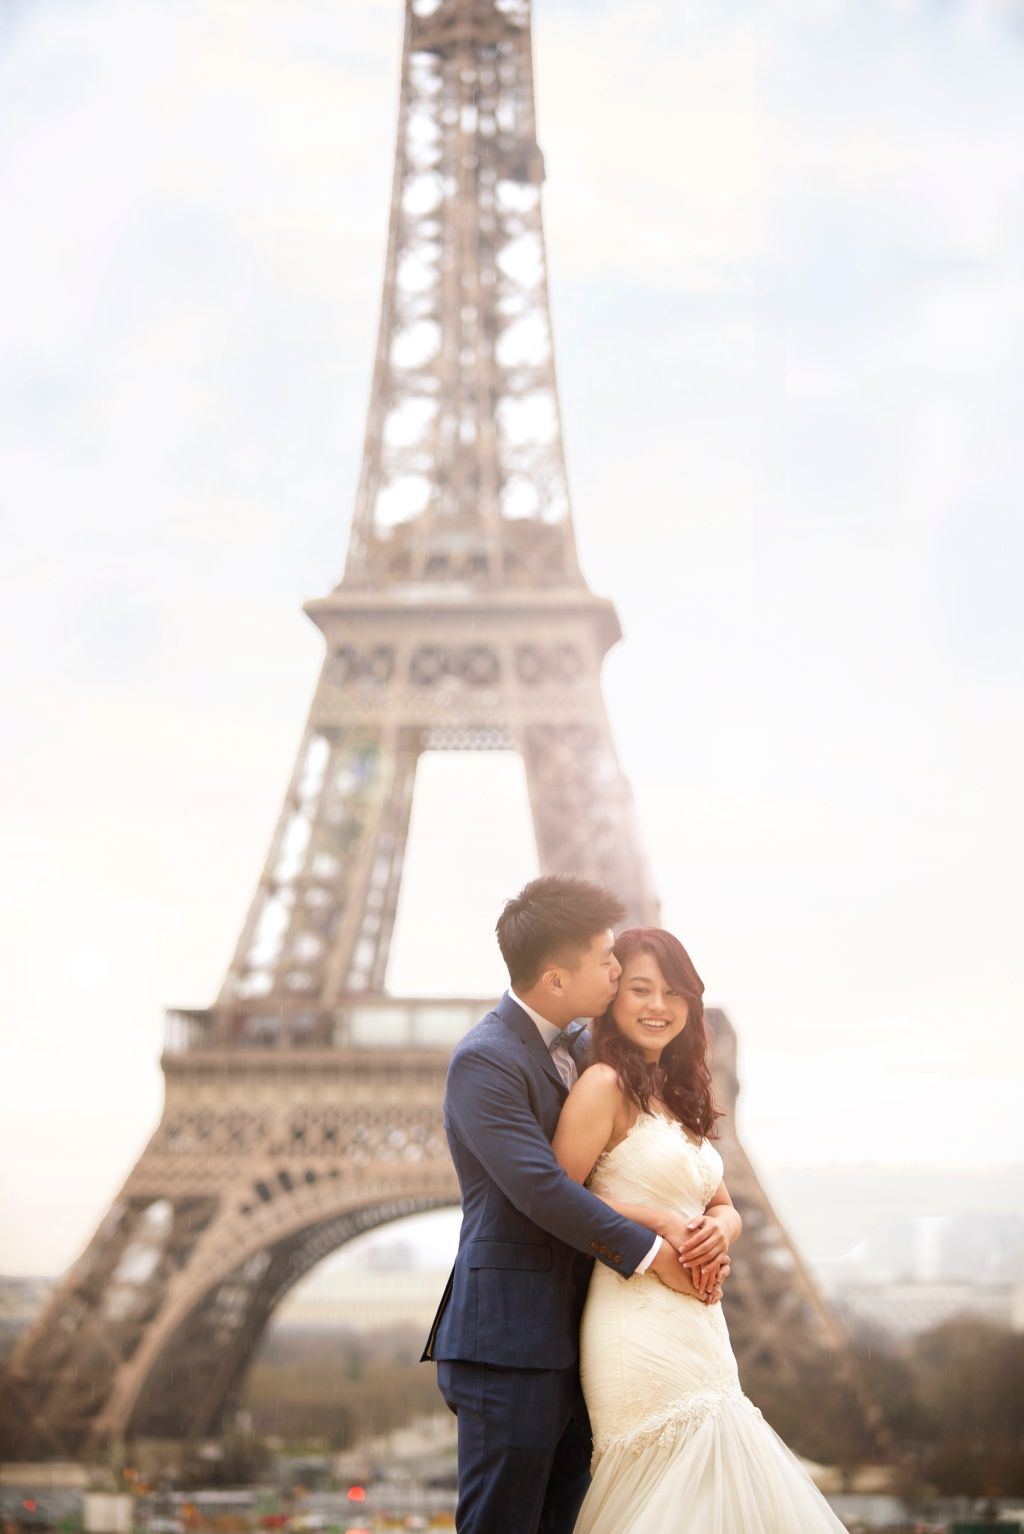 Paris Pre Wedding Photography For Singapore Couple At Eiffel Tower And Palais Royale Arnel Onethreeonefour Pre Wedding Photoshoot Prewedding Photography Pre Wedding